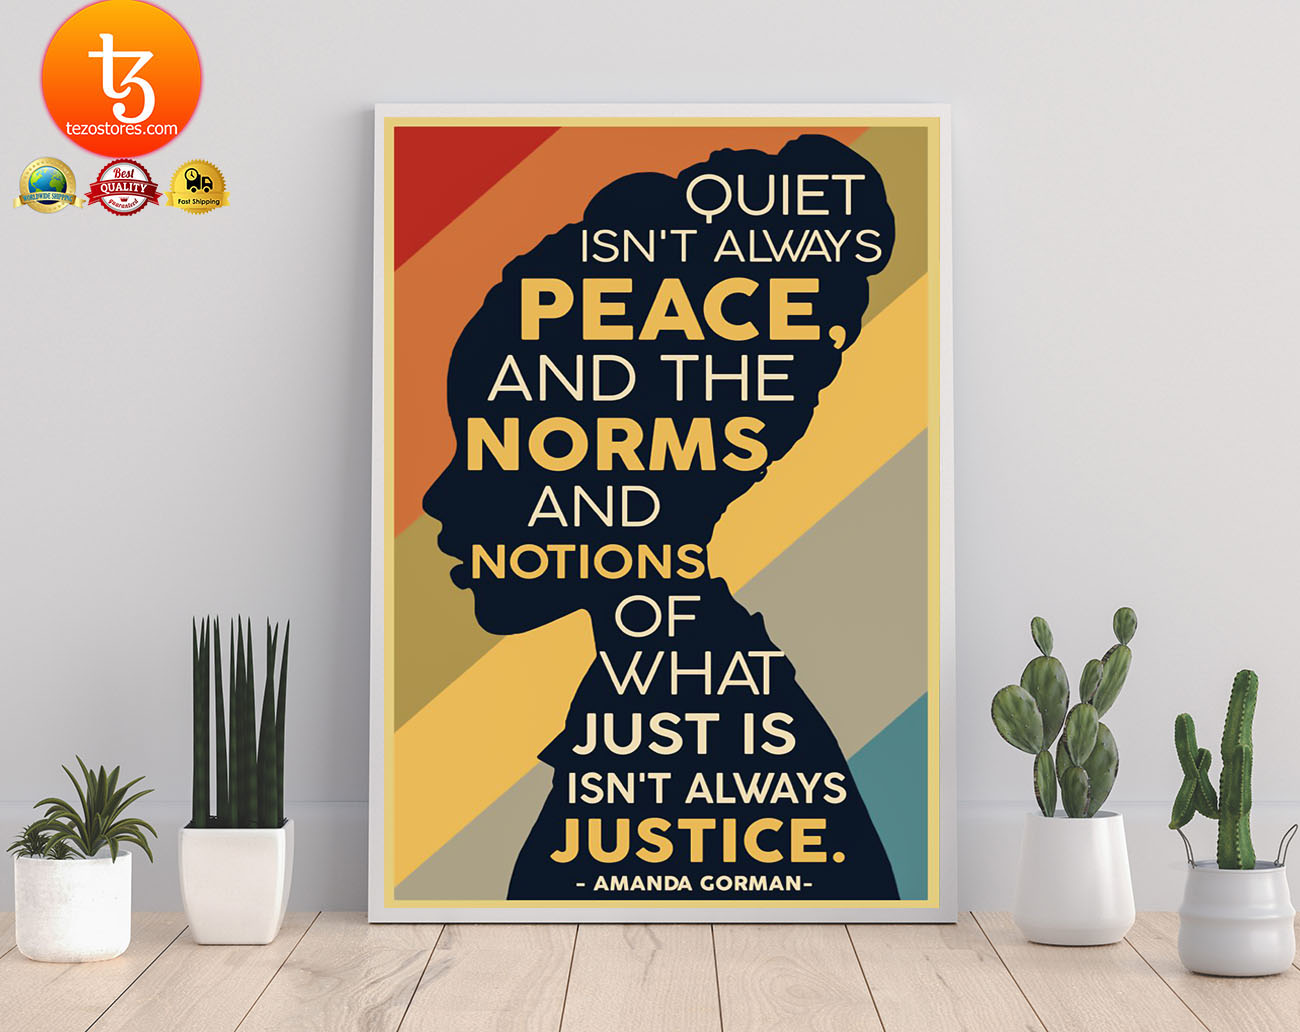 Amanda Gorman Quiet isn't always peace and the norm and notions of what just is isn't always justice poster